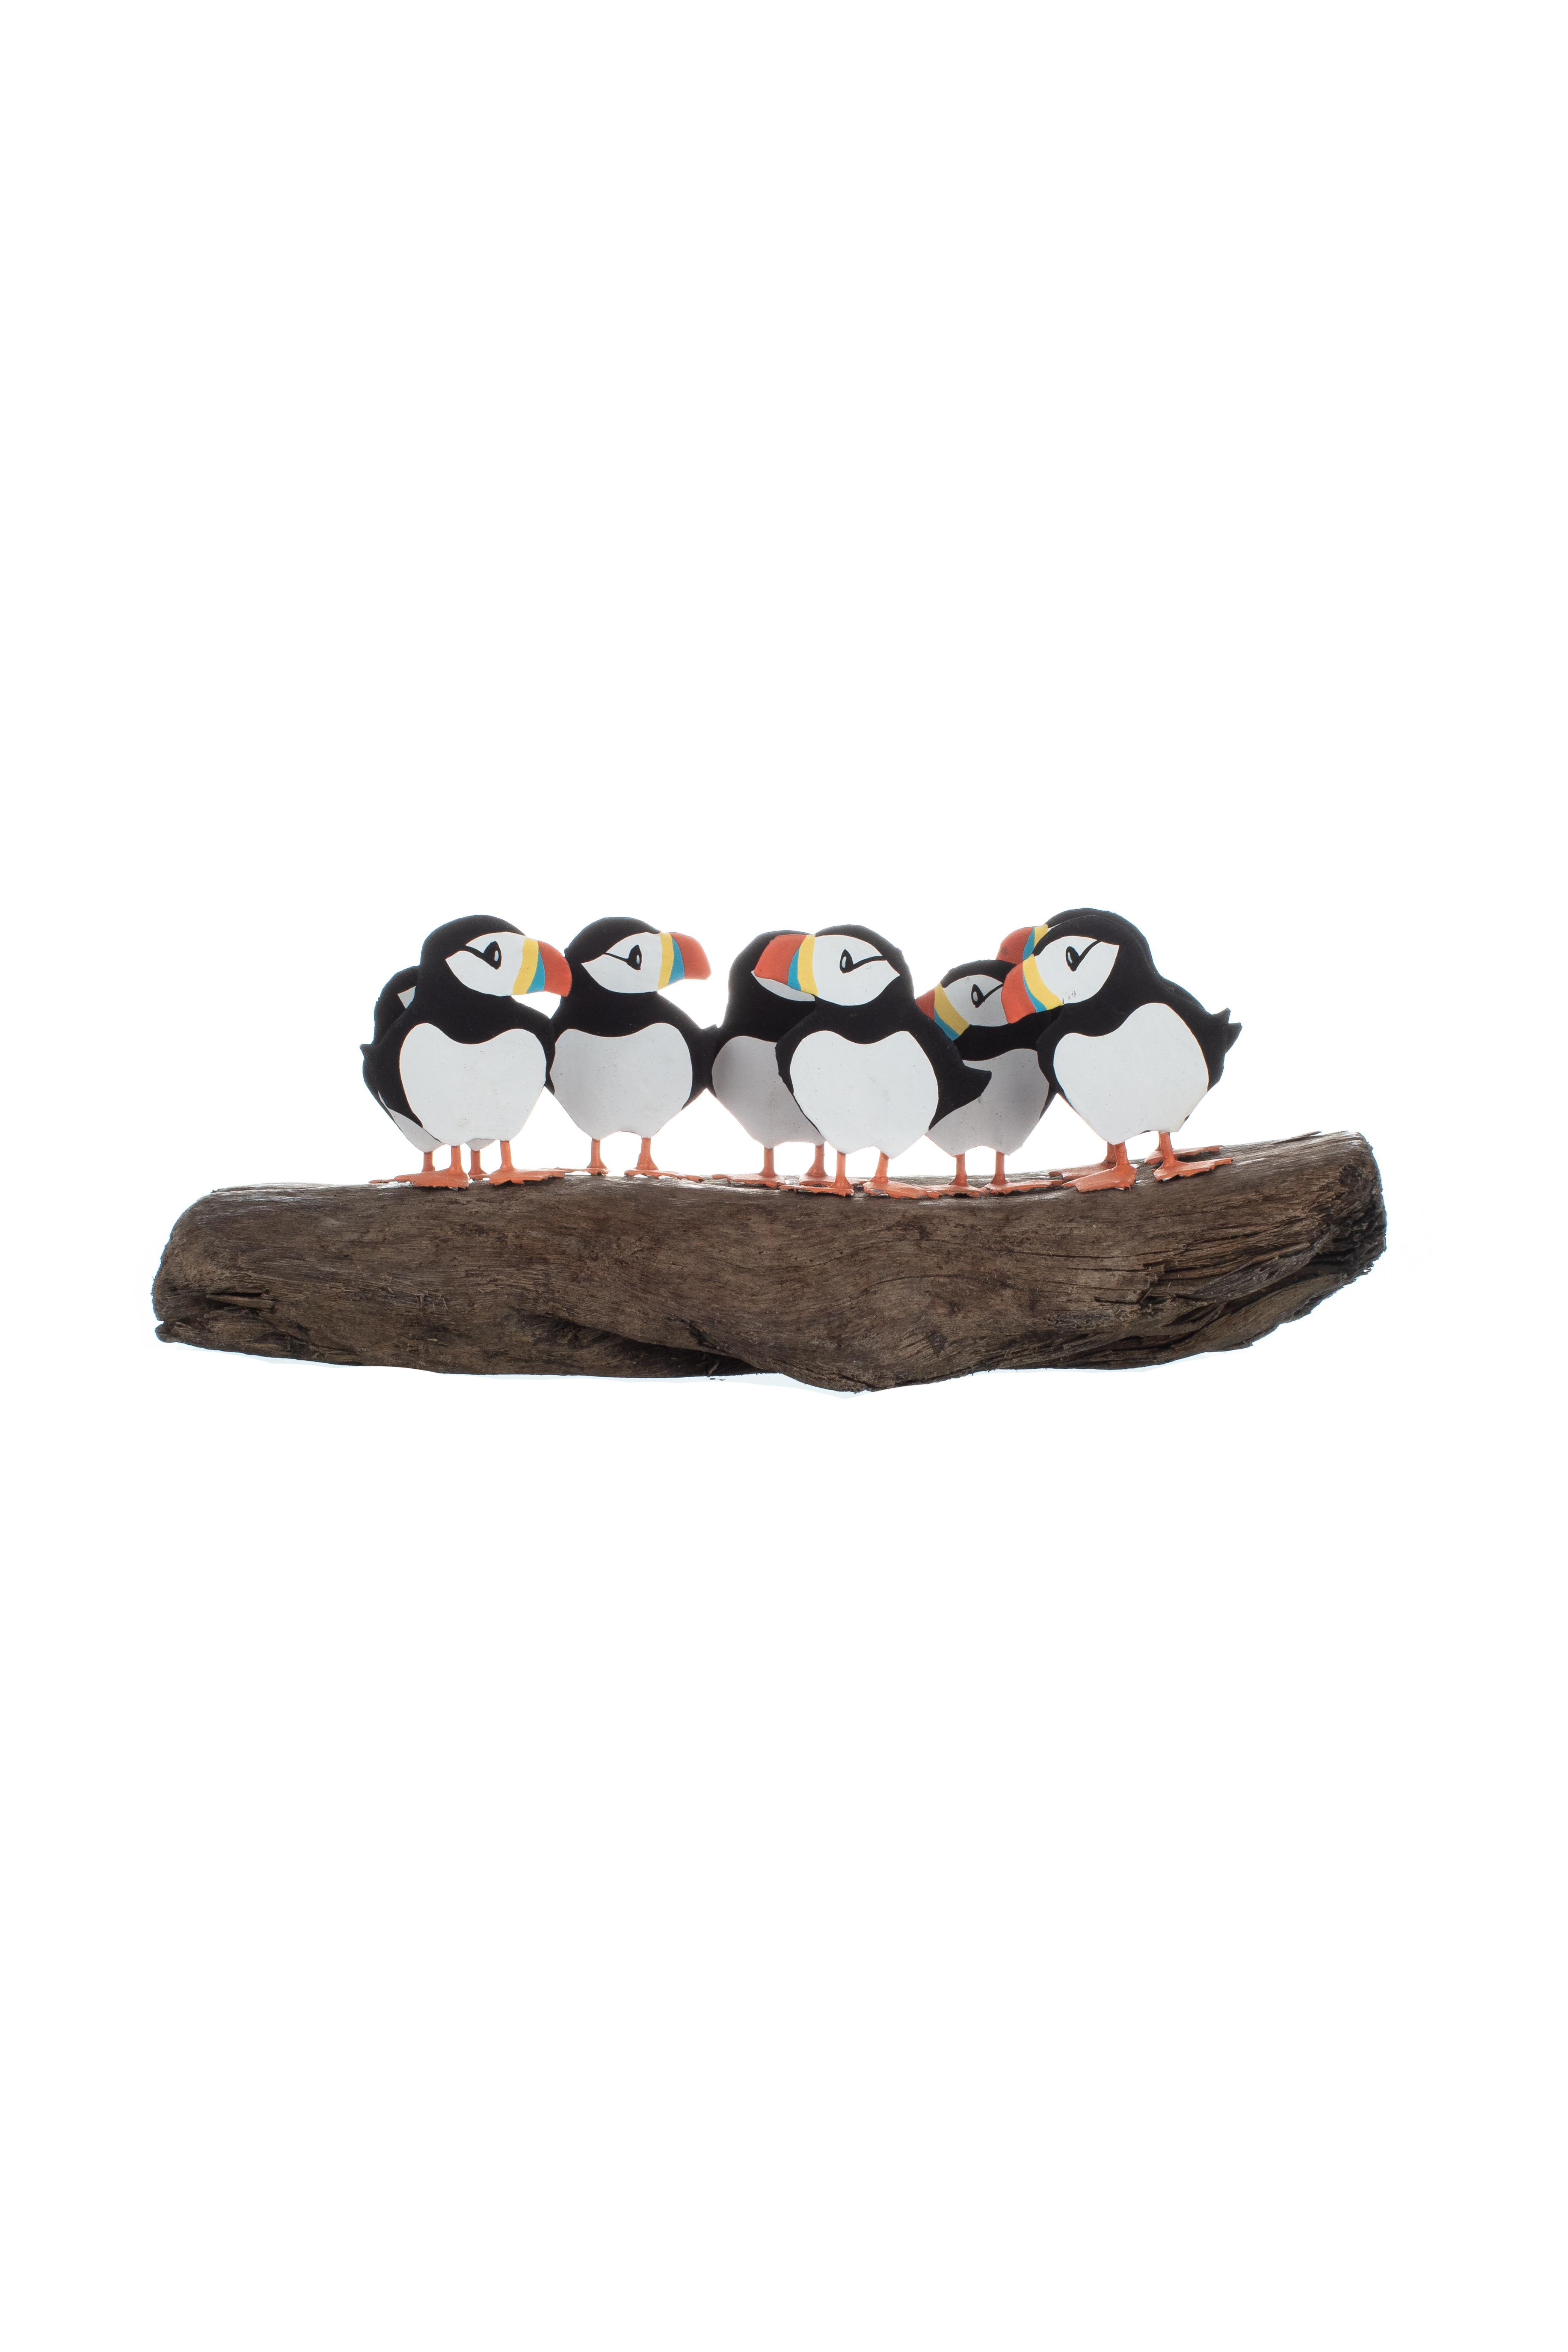 Circus of 8 Puffins on Driftwood